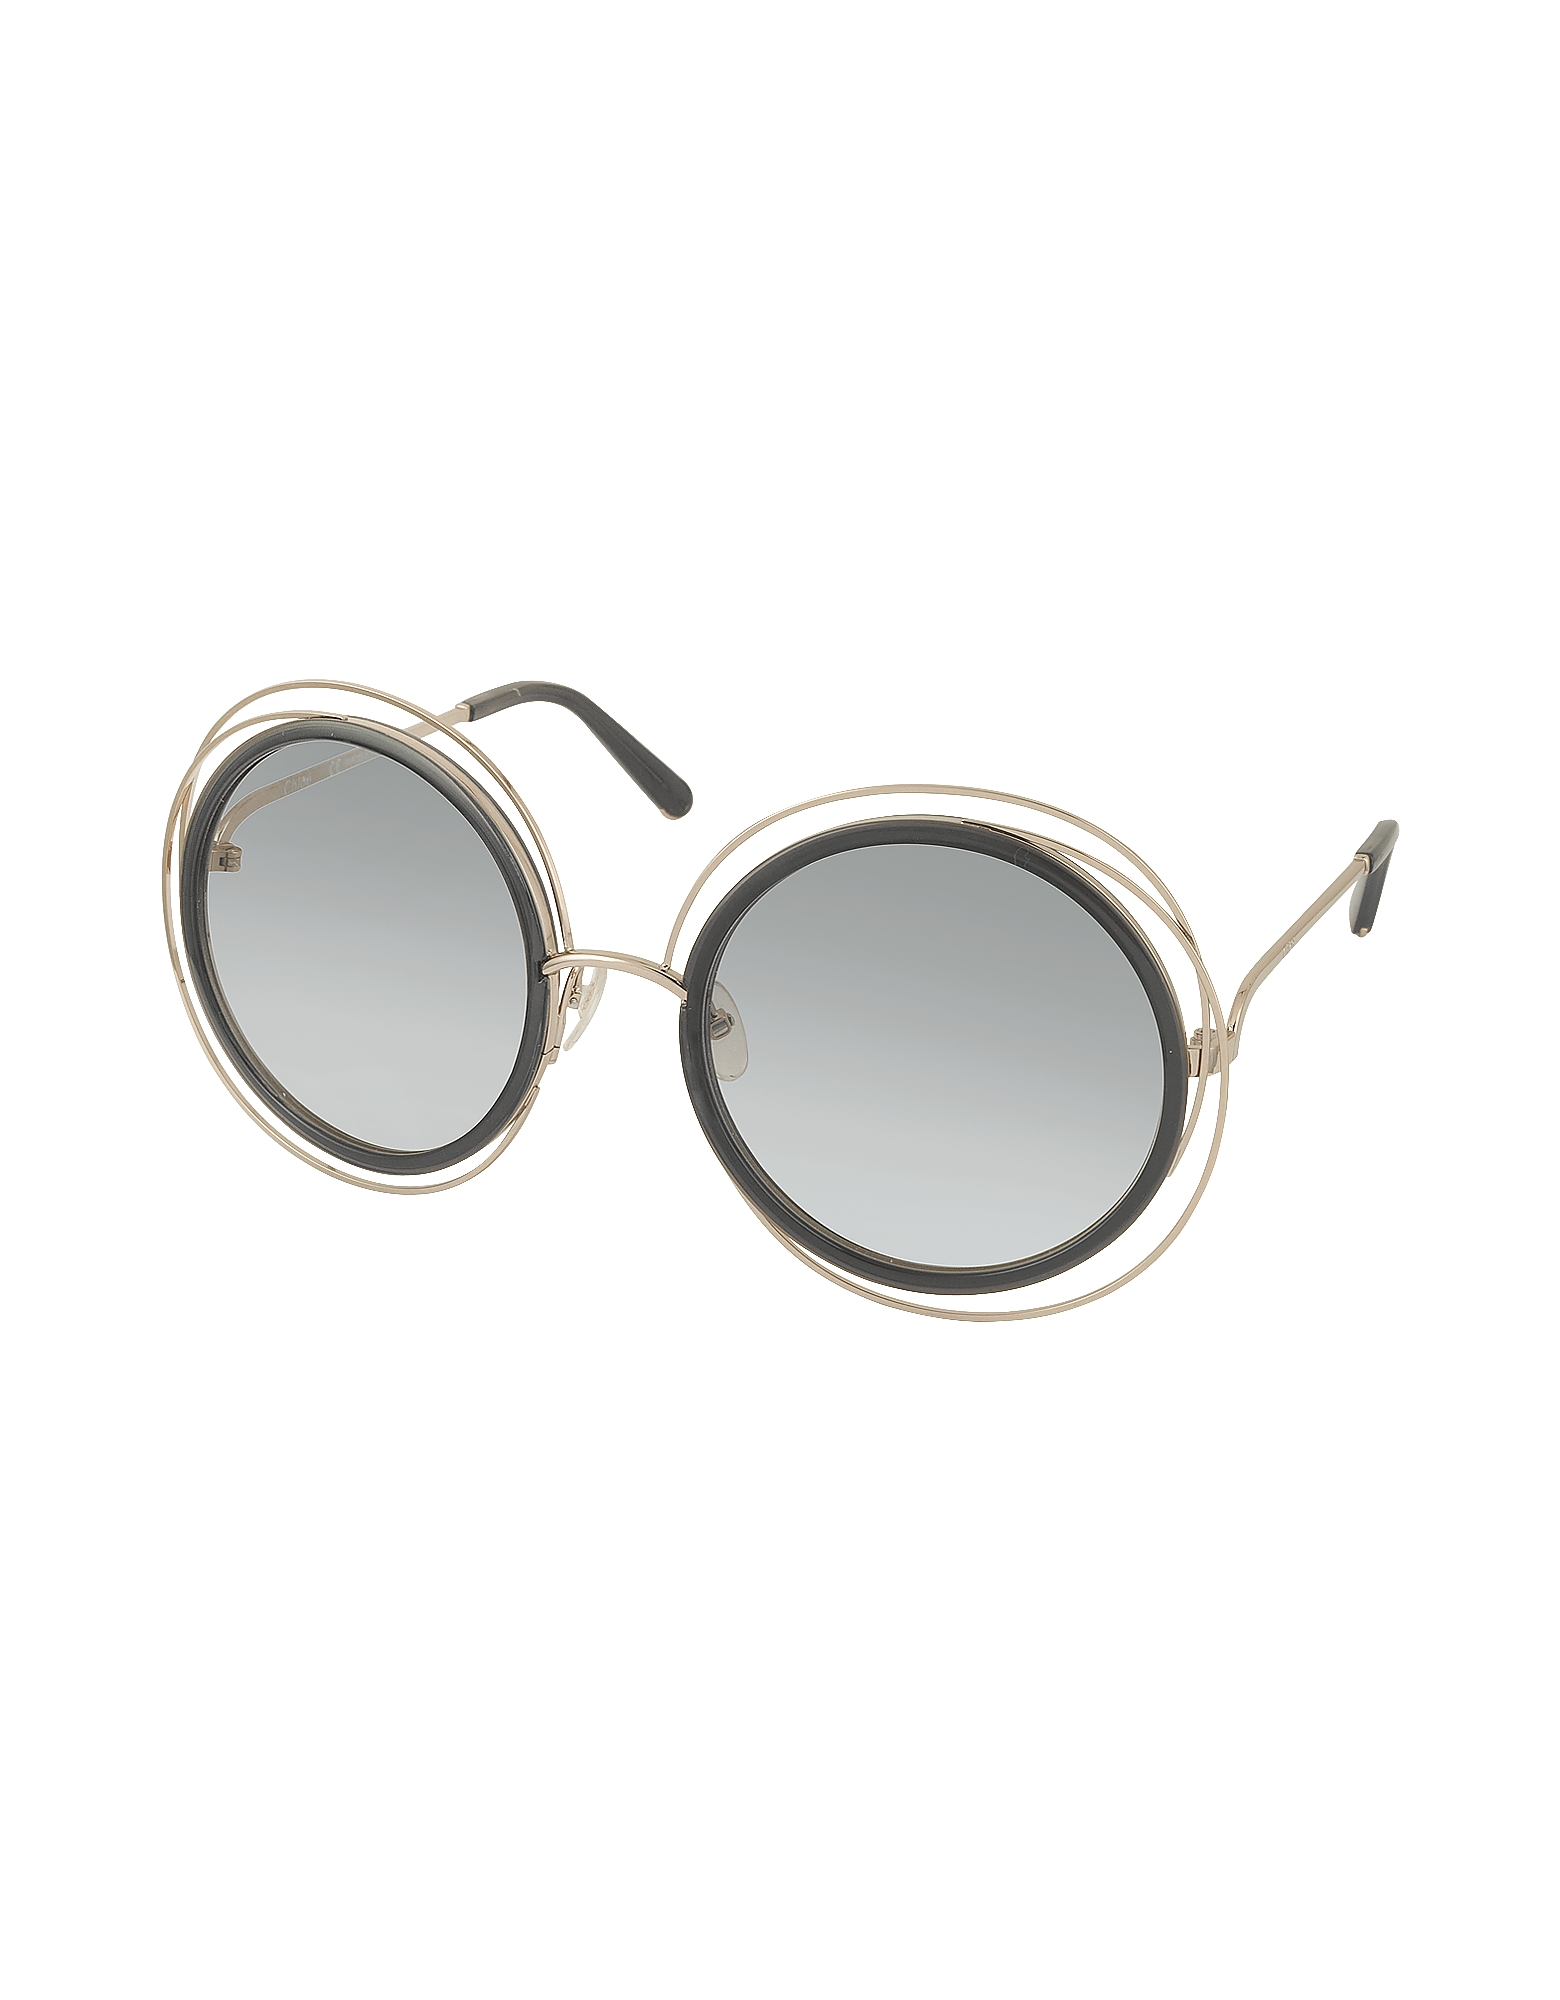 CARLINA CE 120S Round Oversized Acetate & Metal Women's Sunglasses от Forzieri.com INT